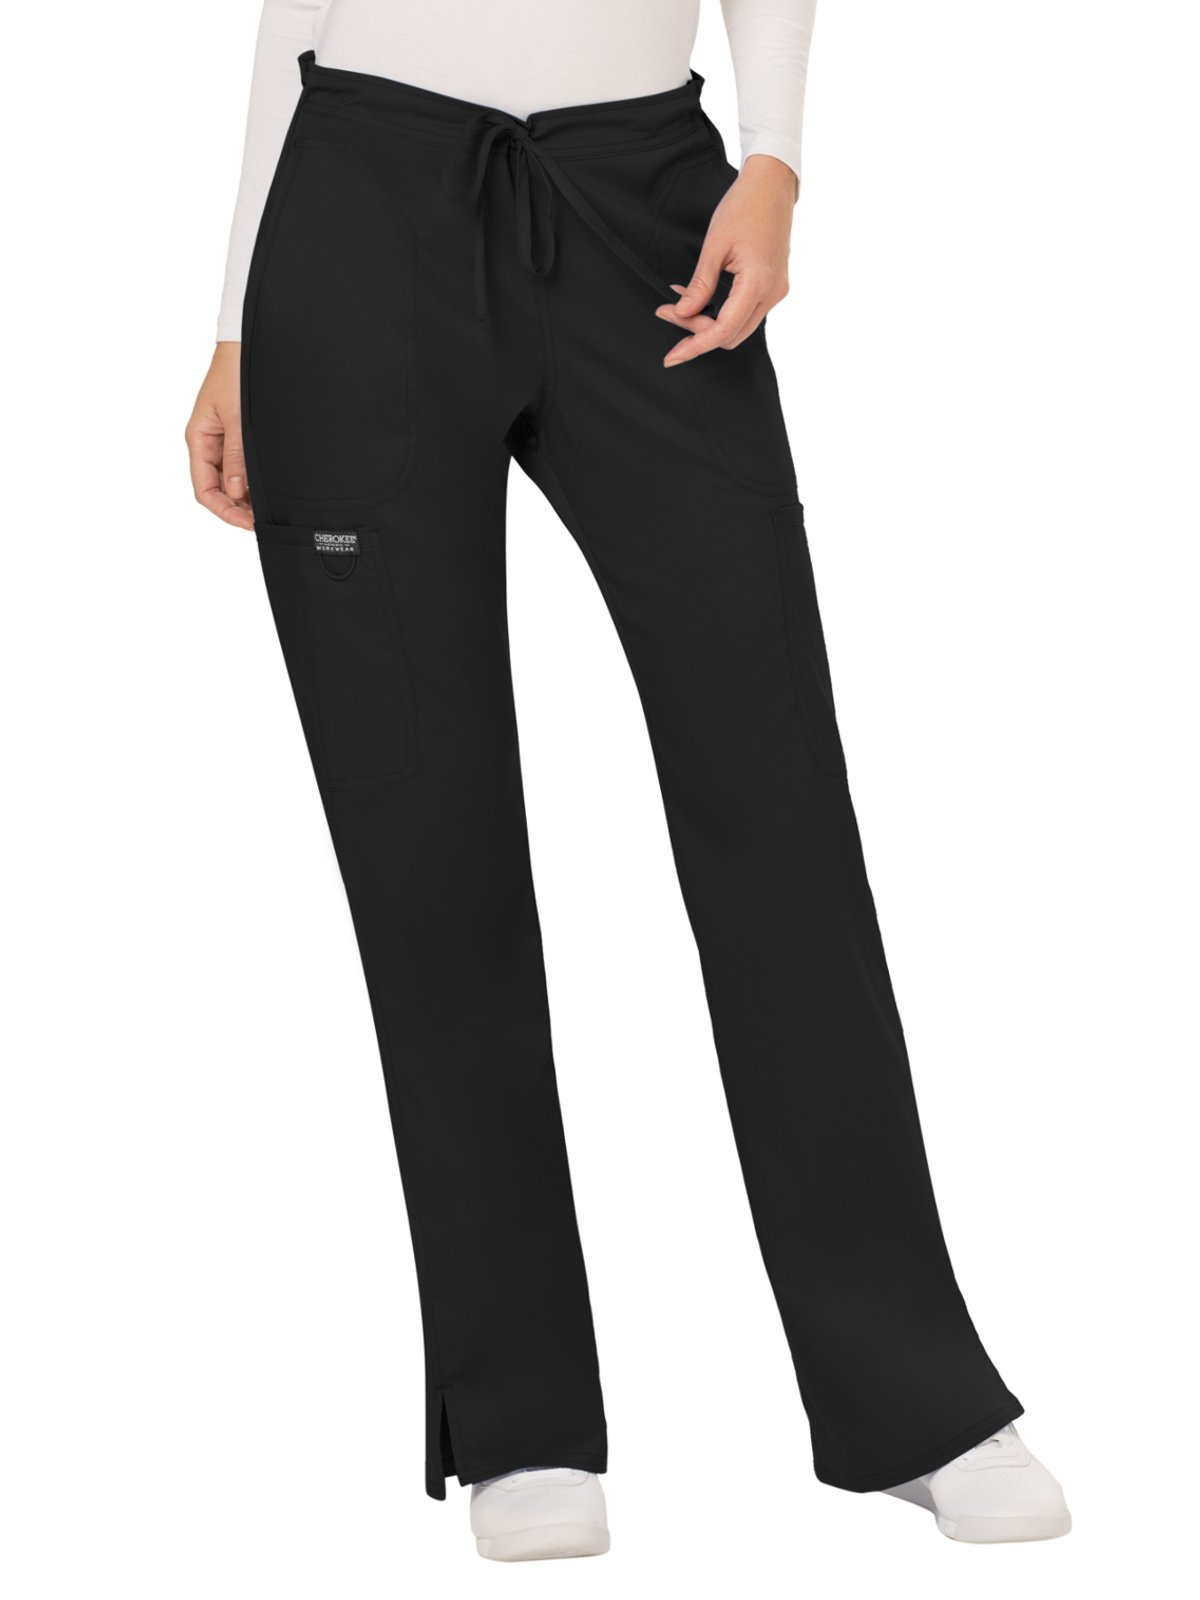 Cherokee Women's Mid Rise Moderate Flare Drawstring Pant, Black, Small by Cherokee